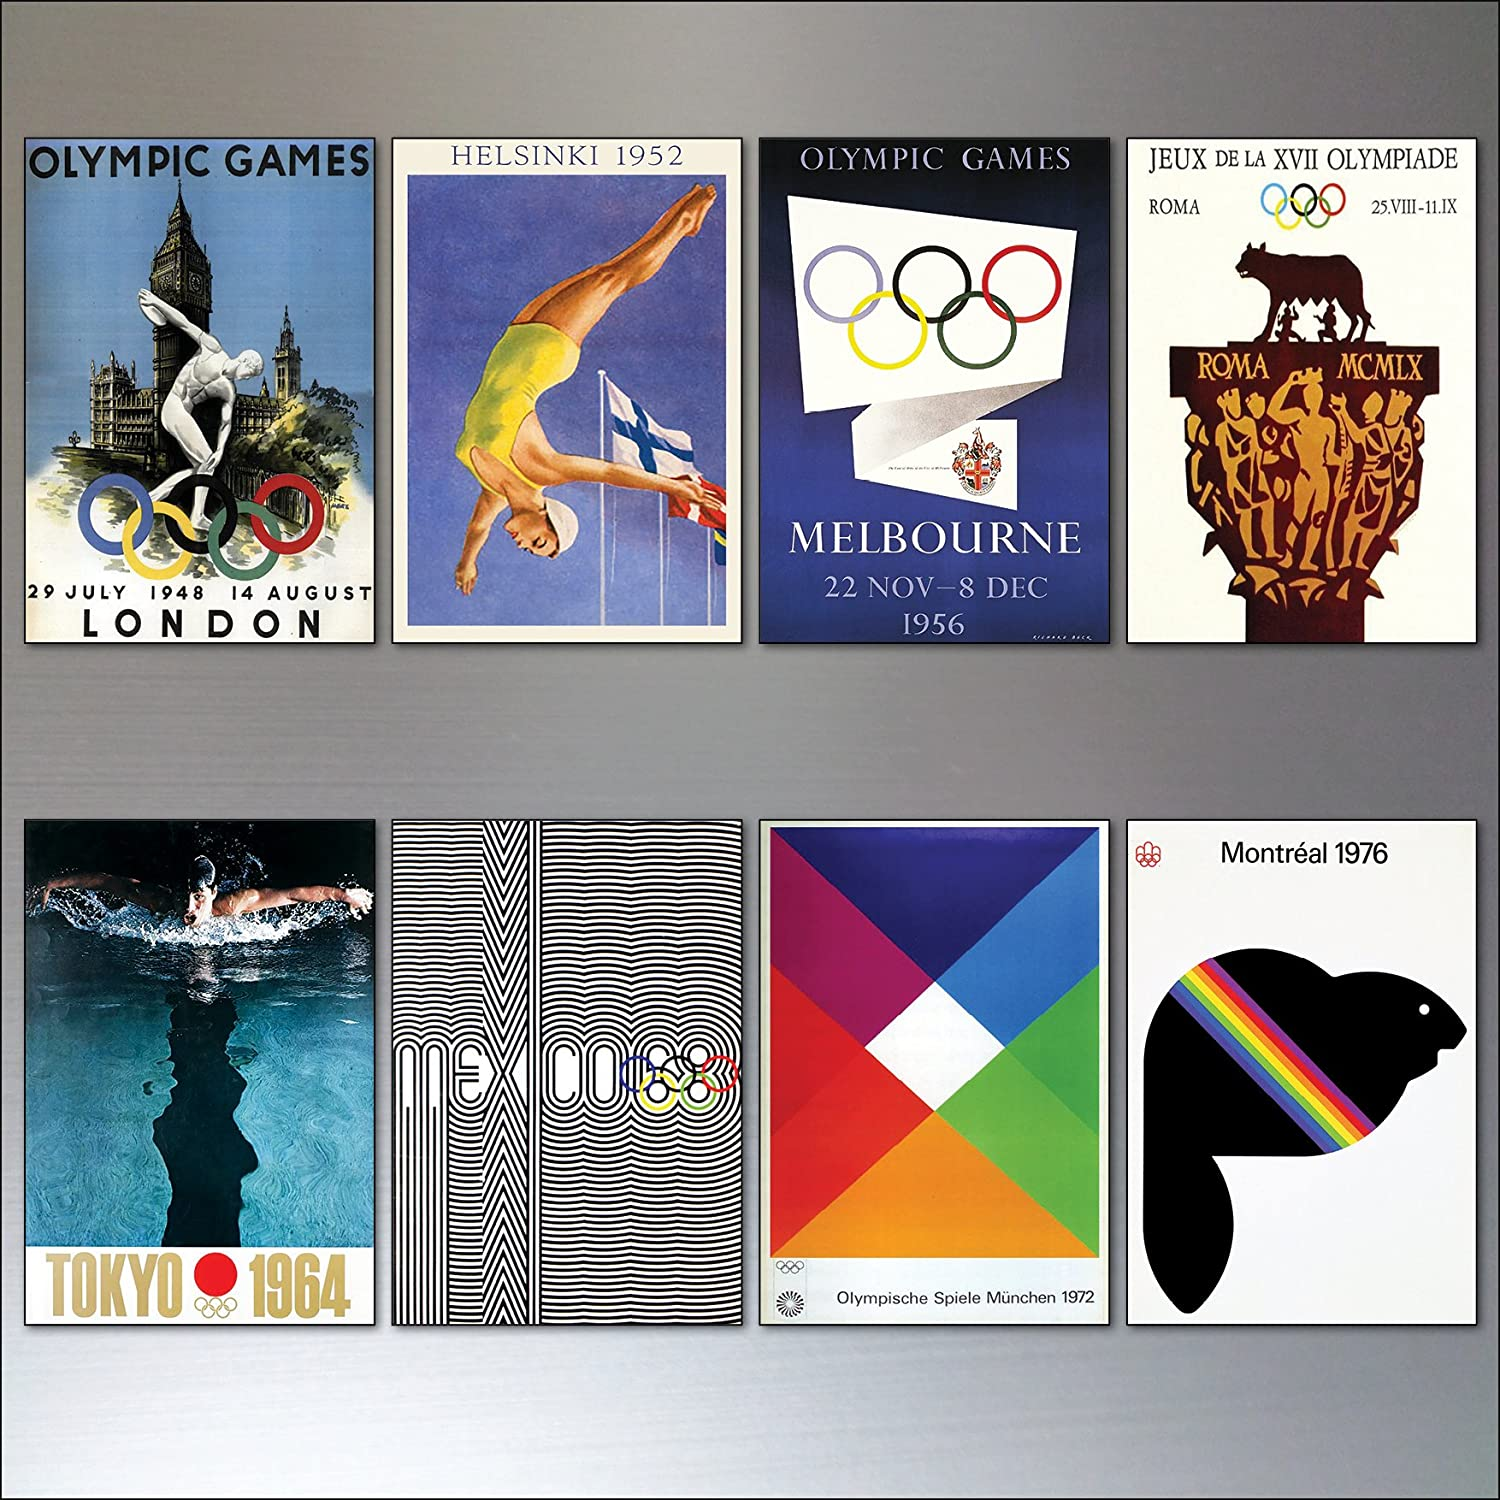 Olympic games posters vintage design fridge magnets 8 Olympic sports magnets